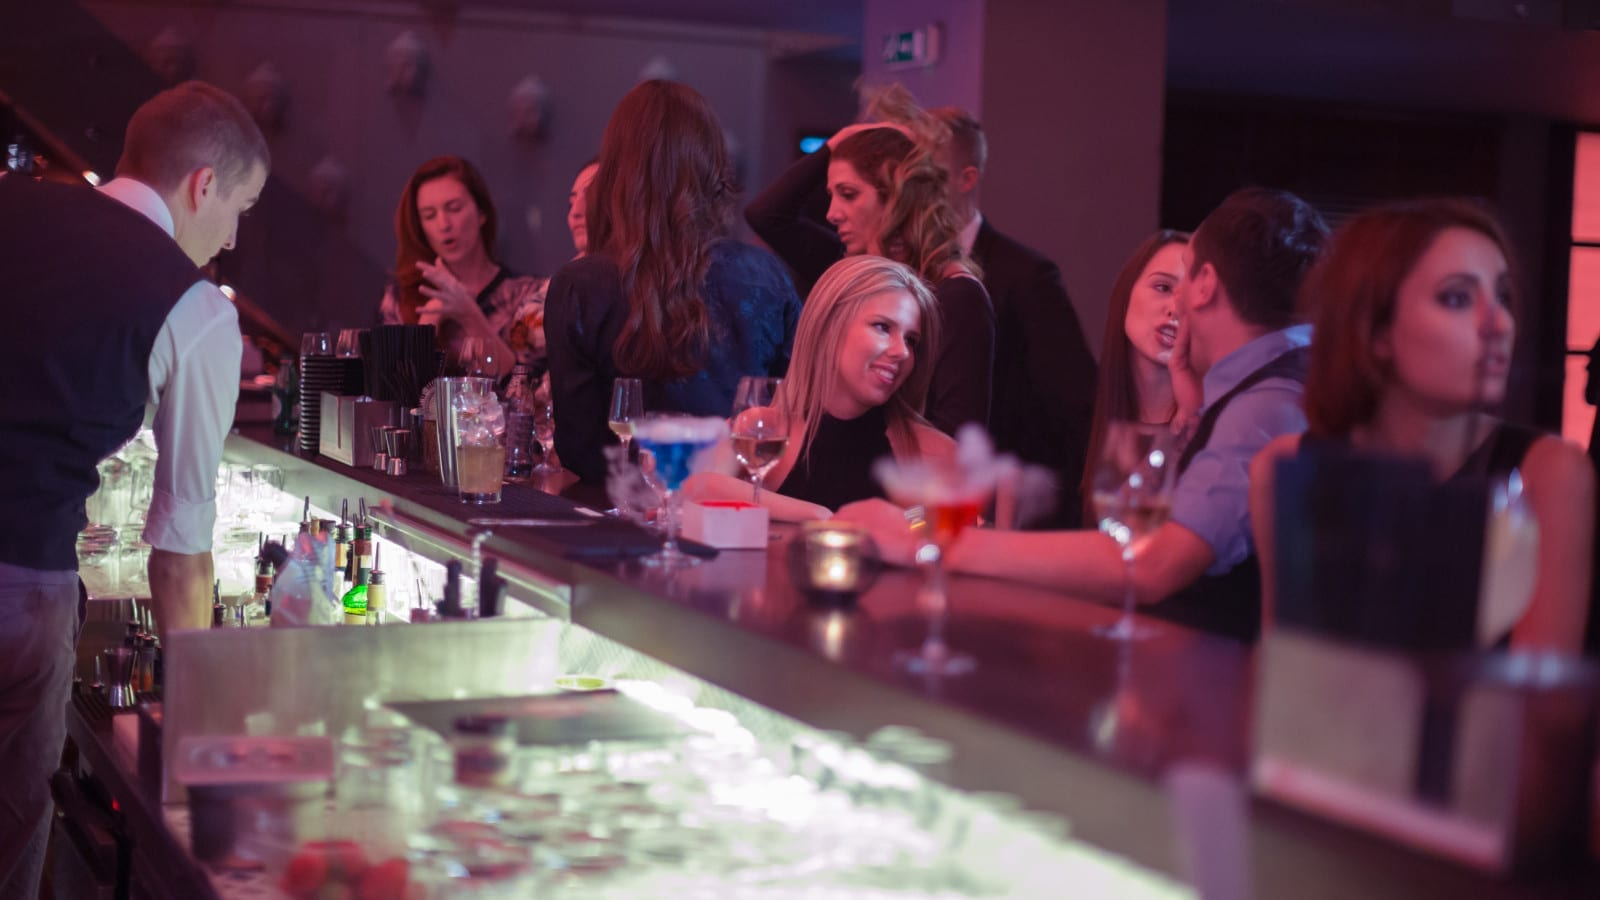 Busy Night Club / Bar Stock Photo